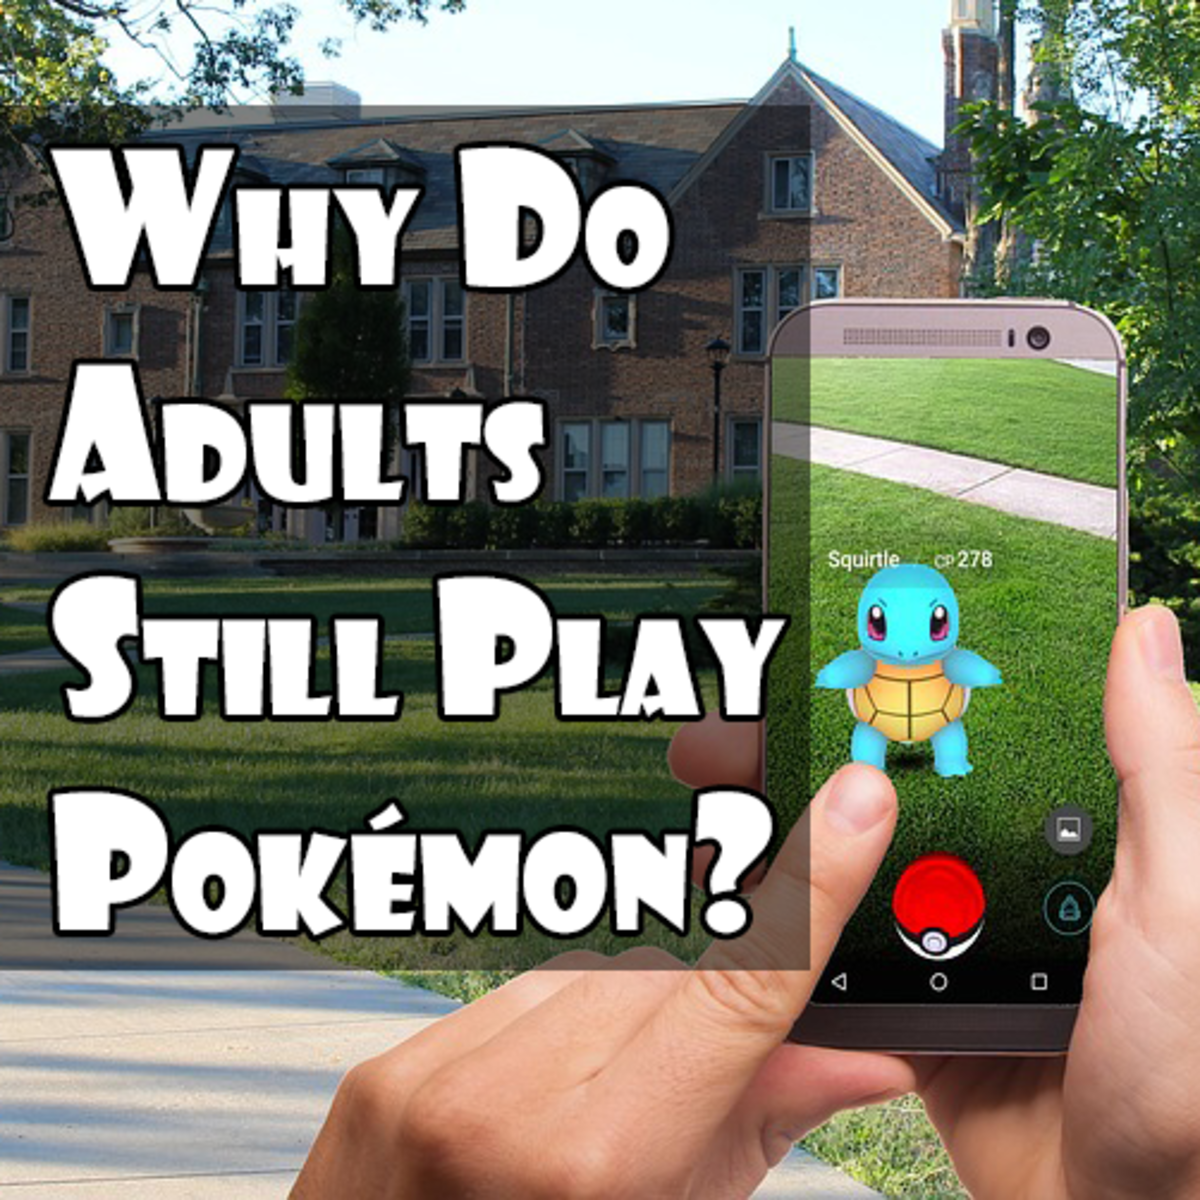 Why Do Adults Still Play